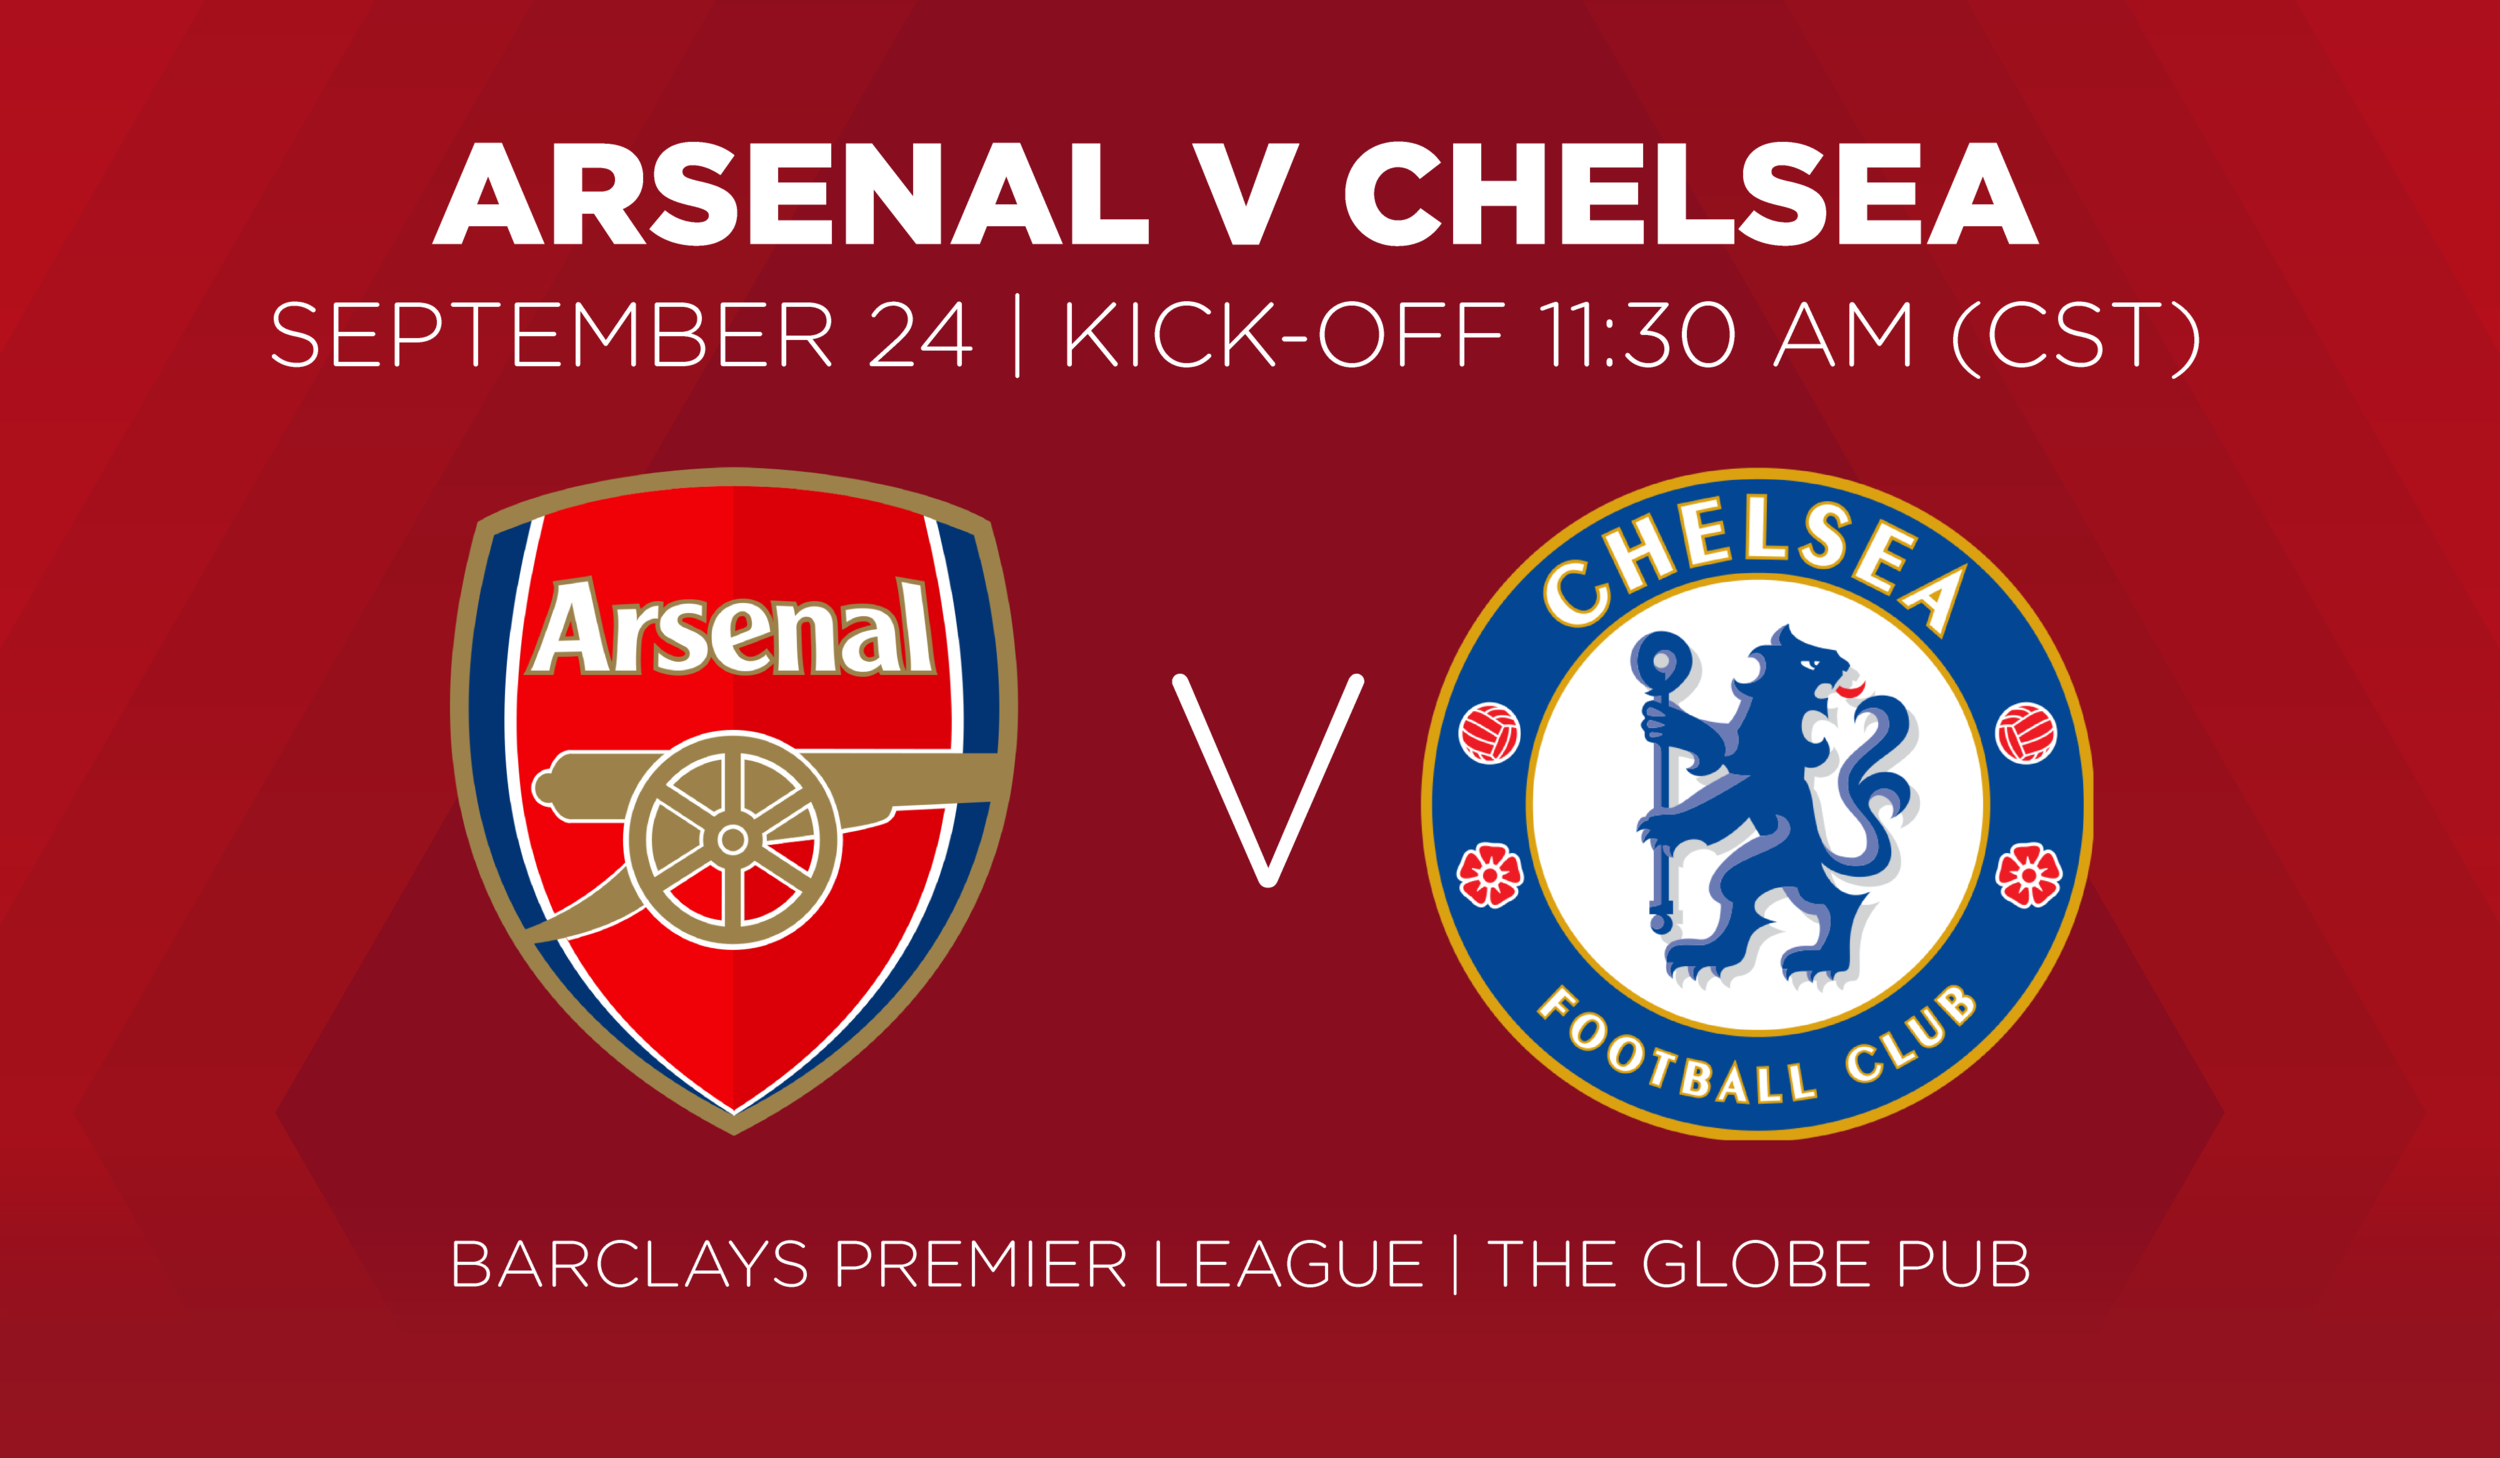 Arsenal V Chelsea September 24